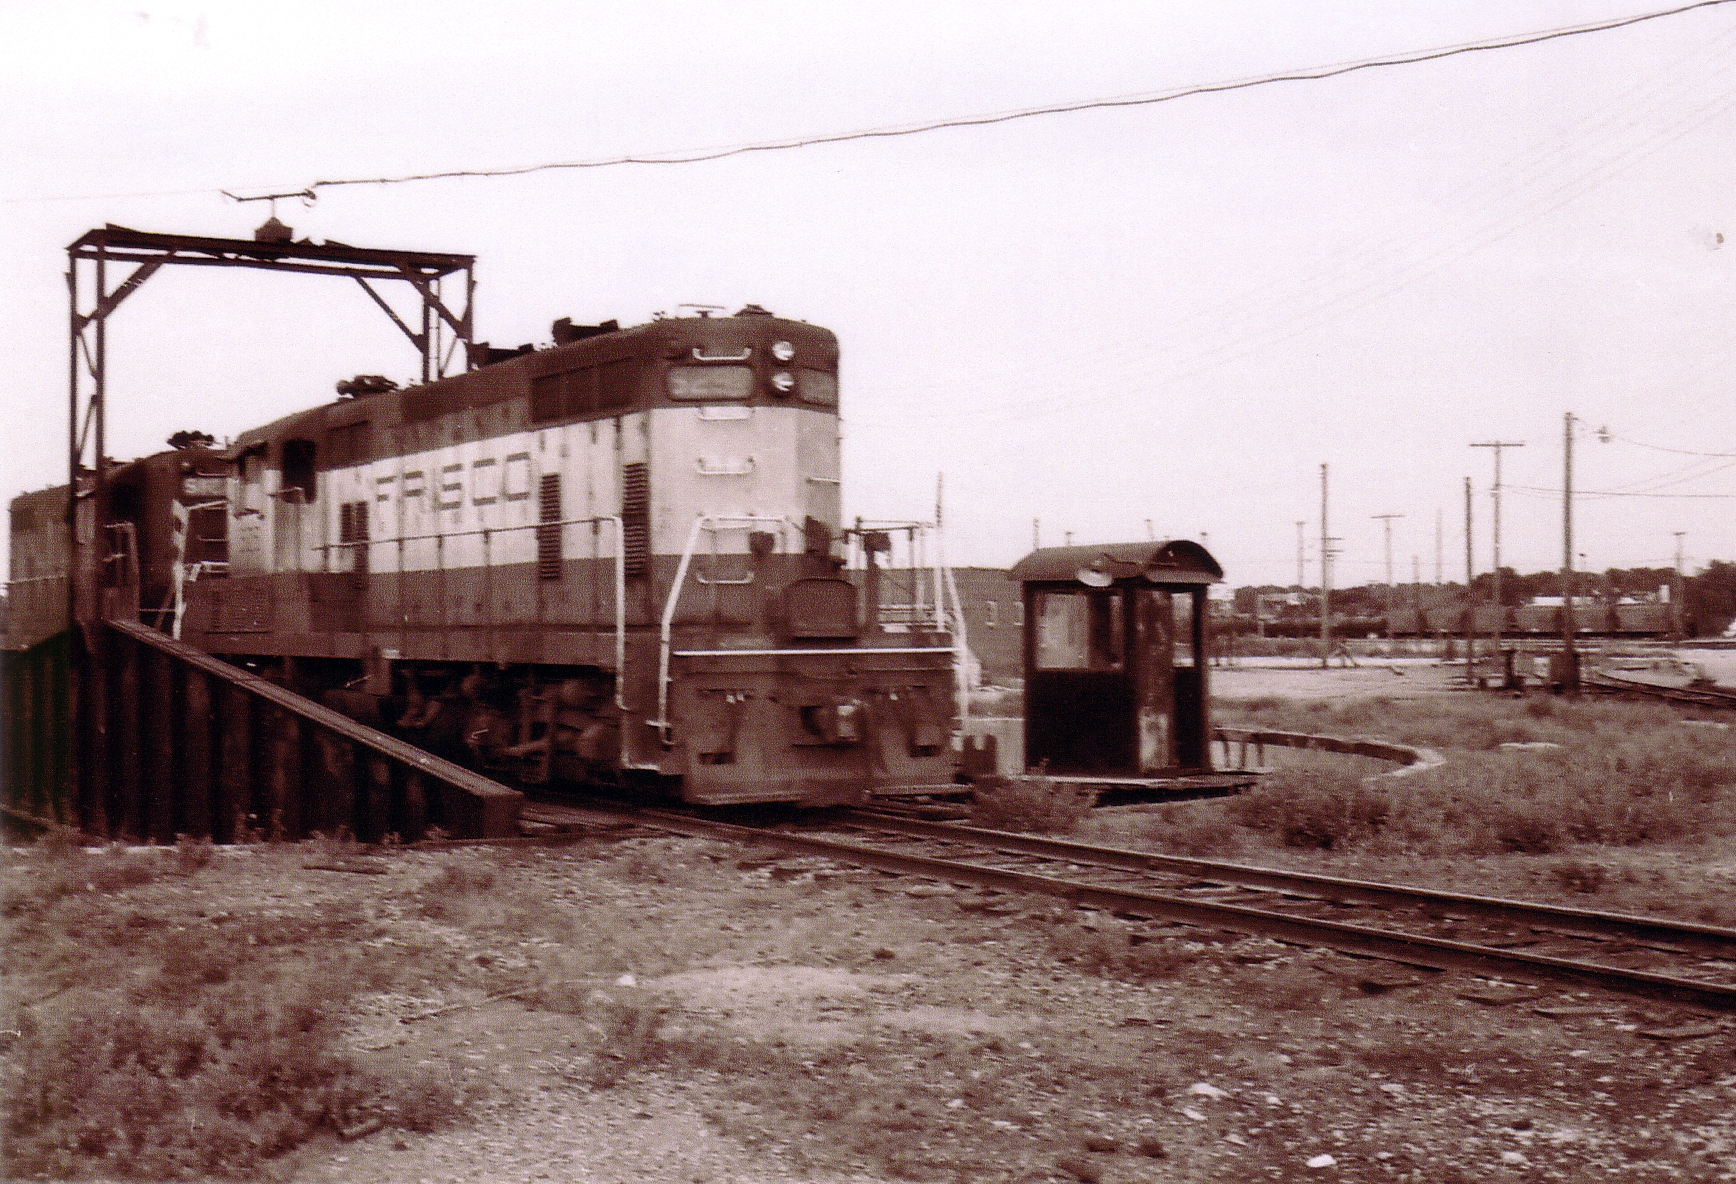 GP7s 529 and 512 (date and location unknown)